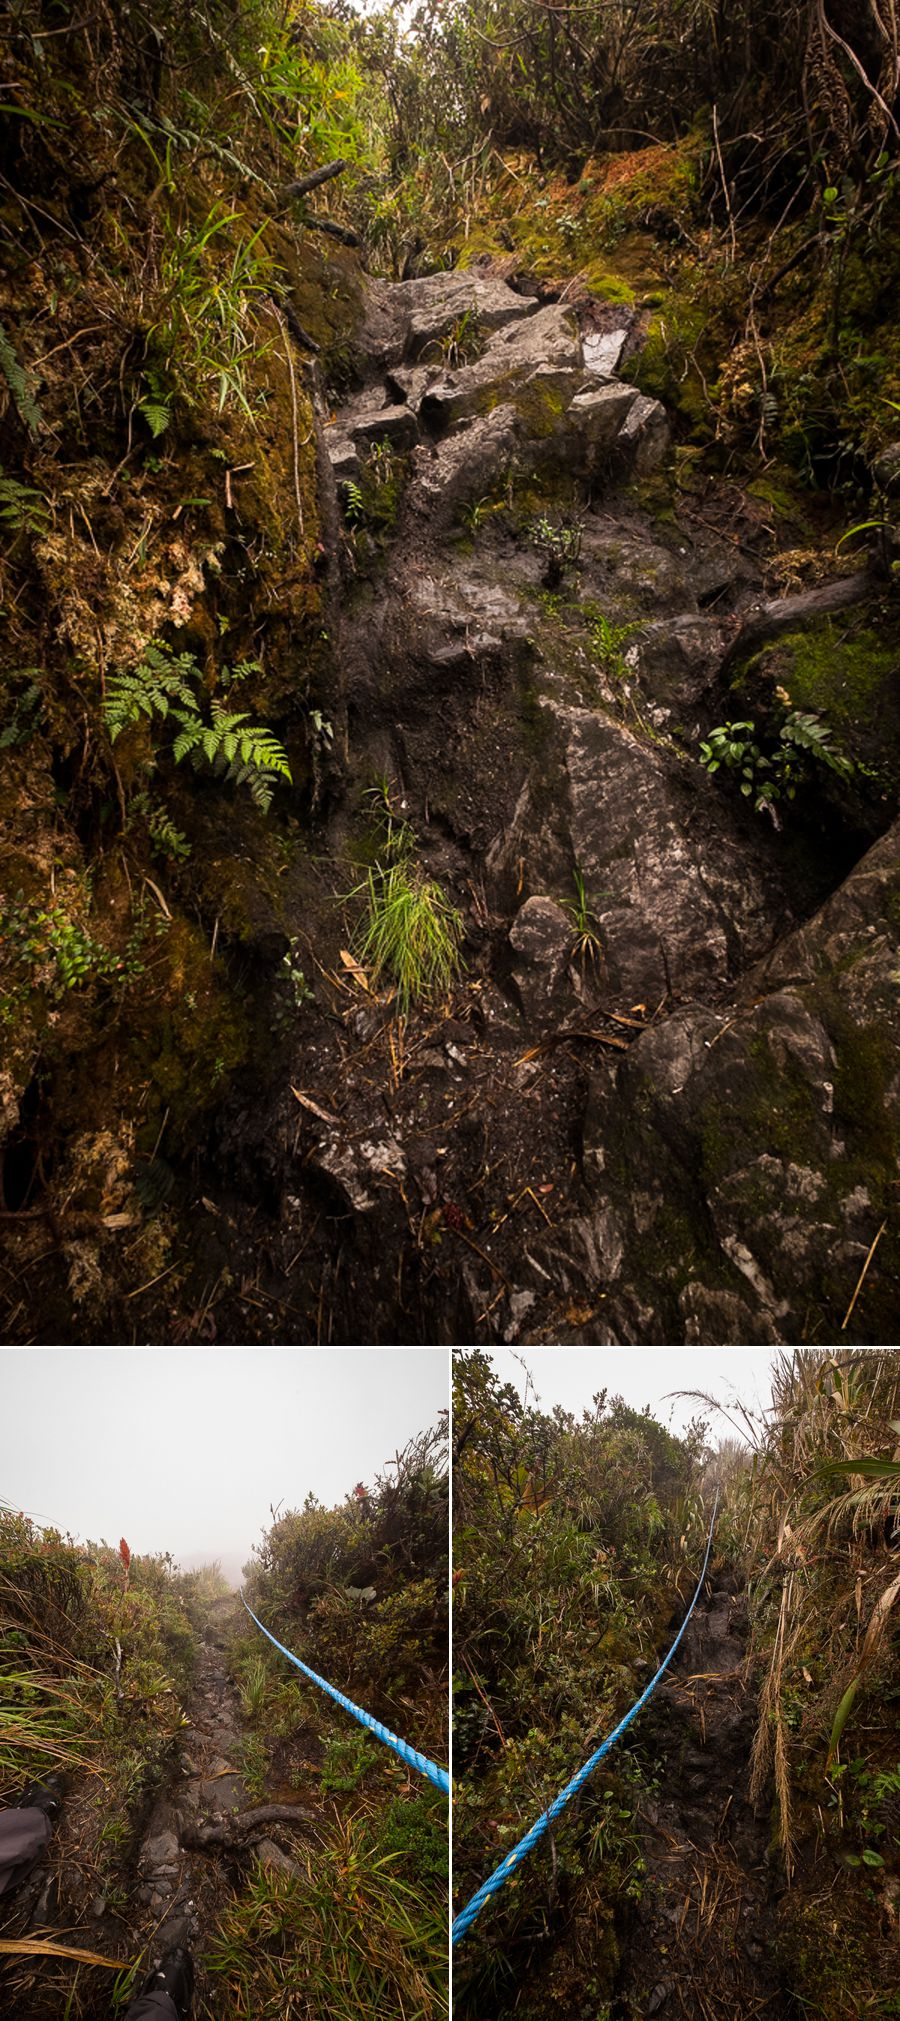 Ropes to assist in the very steep sections of Los Miradores hike in the Podocarpus National Park near Loja, Ecuador